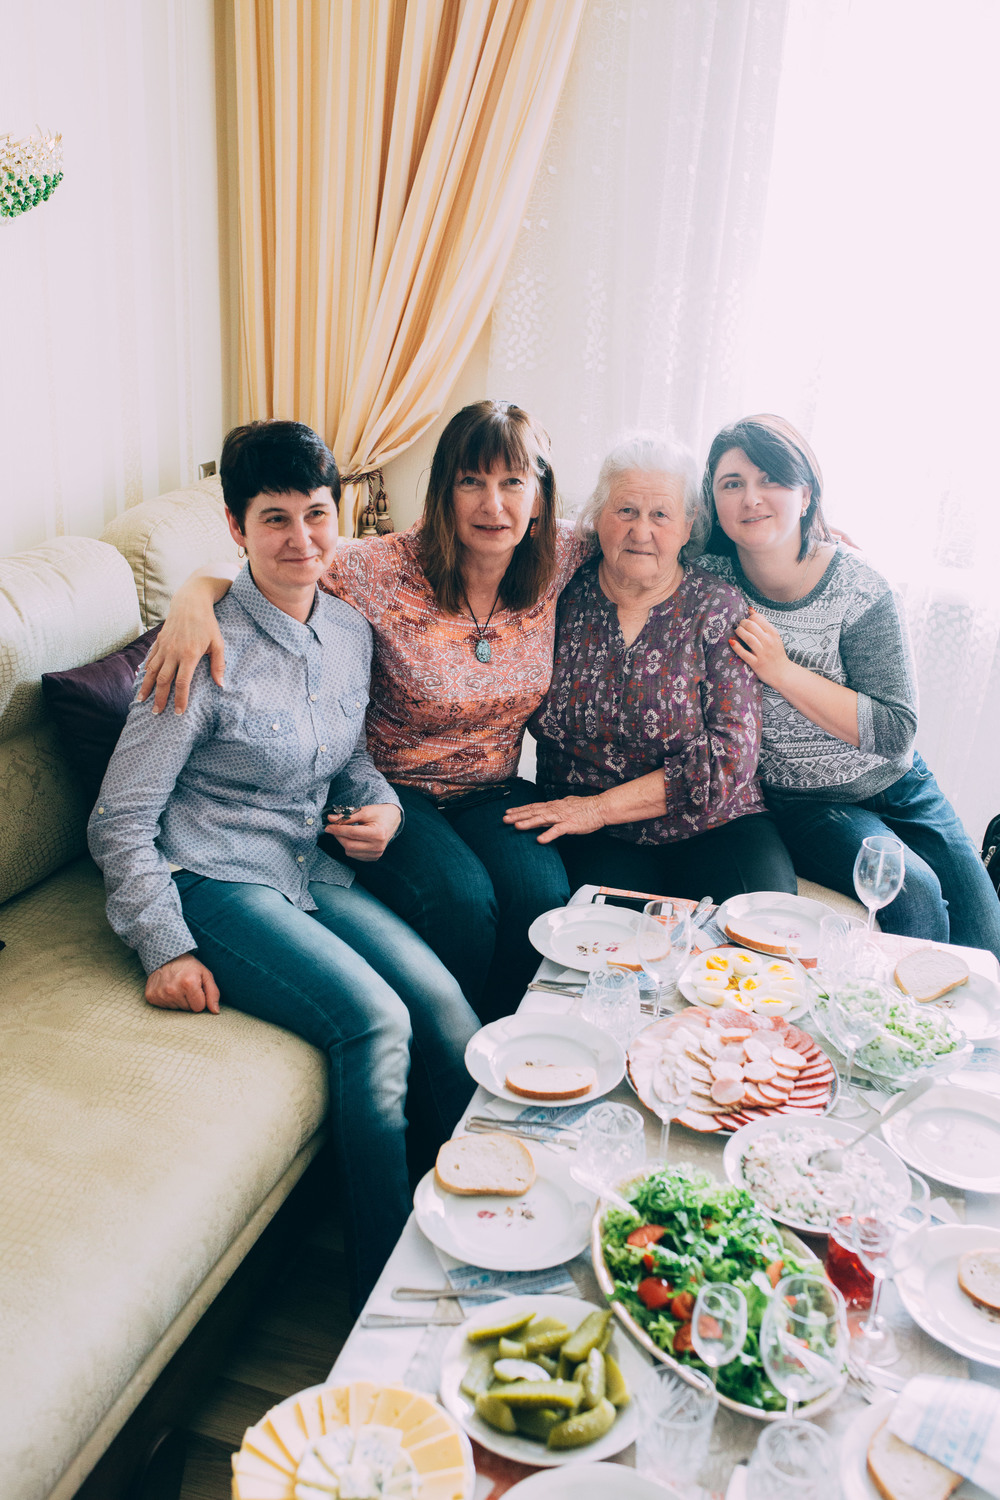 Chervonograd. Marusia, Mom, Katya and Oksana.